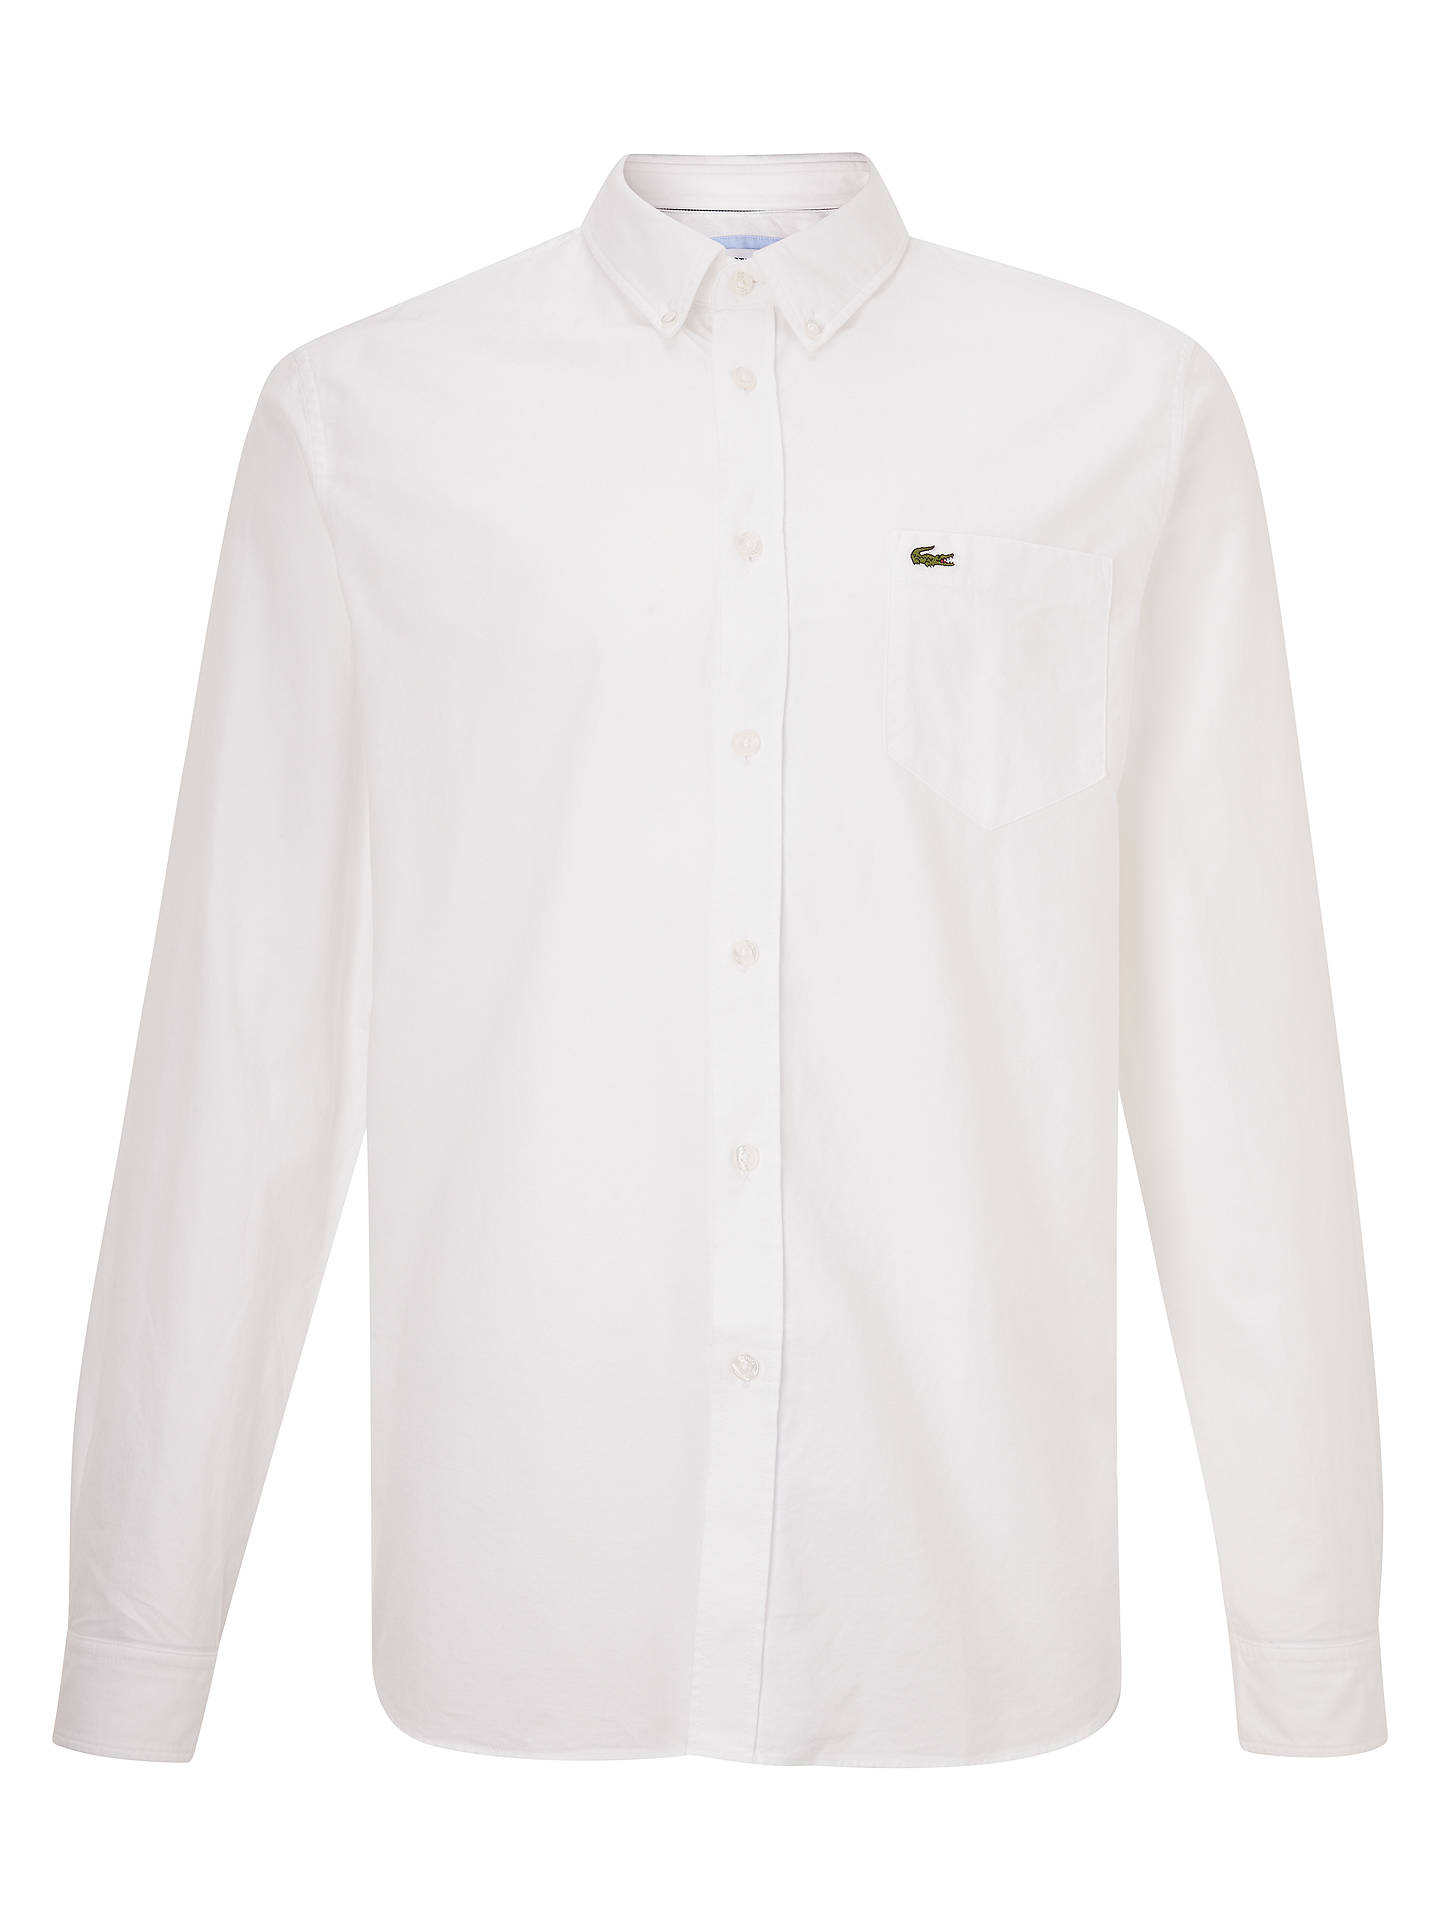 229034d0ce Lacoste Long Sleeve Oxford Shirt, White at John Lewis & Partners